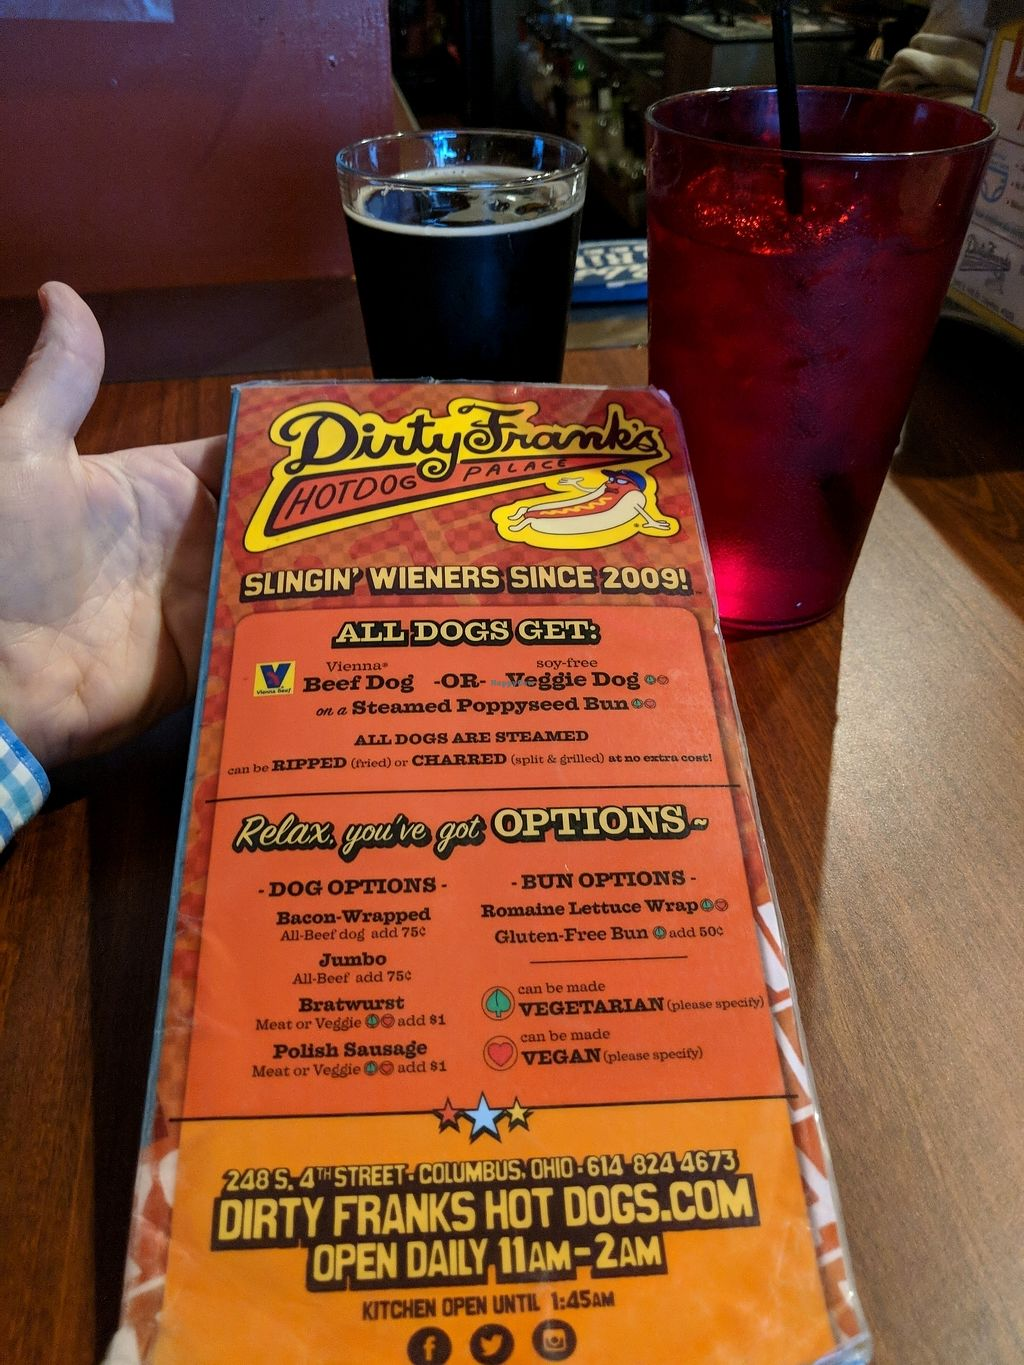 "Photo of Dirty Franks Hot Dog Palace  by <a href=""/members/profile/Toroco"">Toroco</a> <br/>Menu <br/> April 9, 2018  - <a href='/contact/abuse/image/29125/383088'>Report</a>"